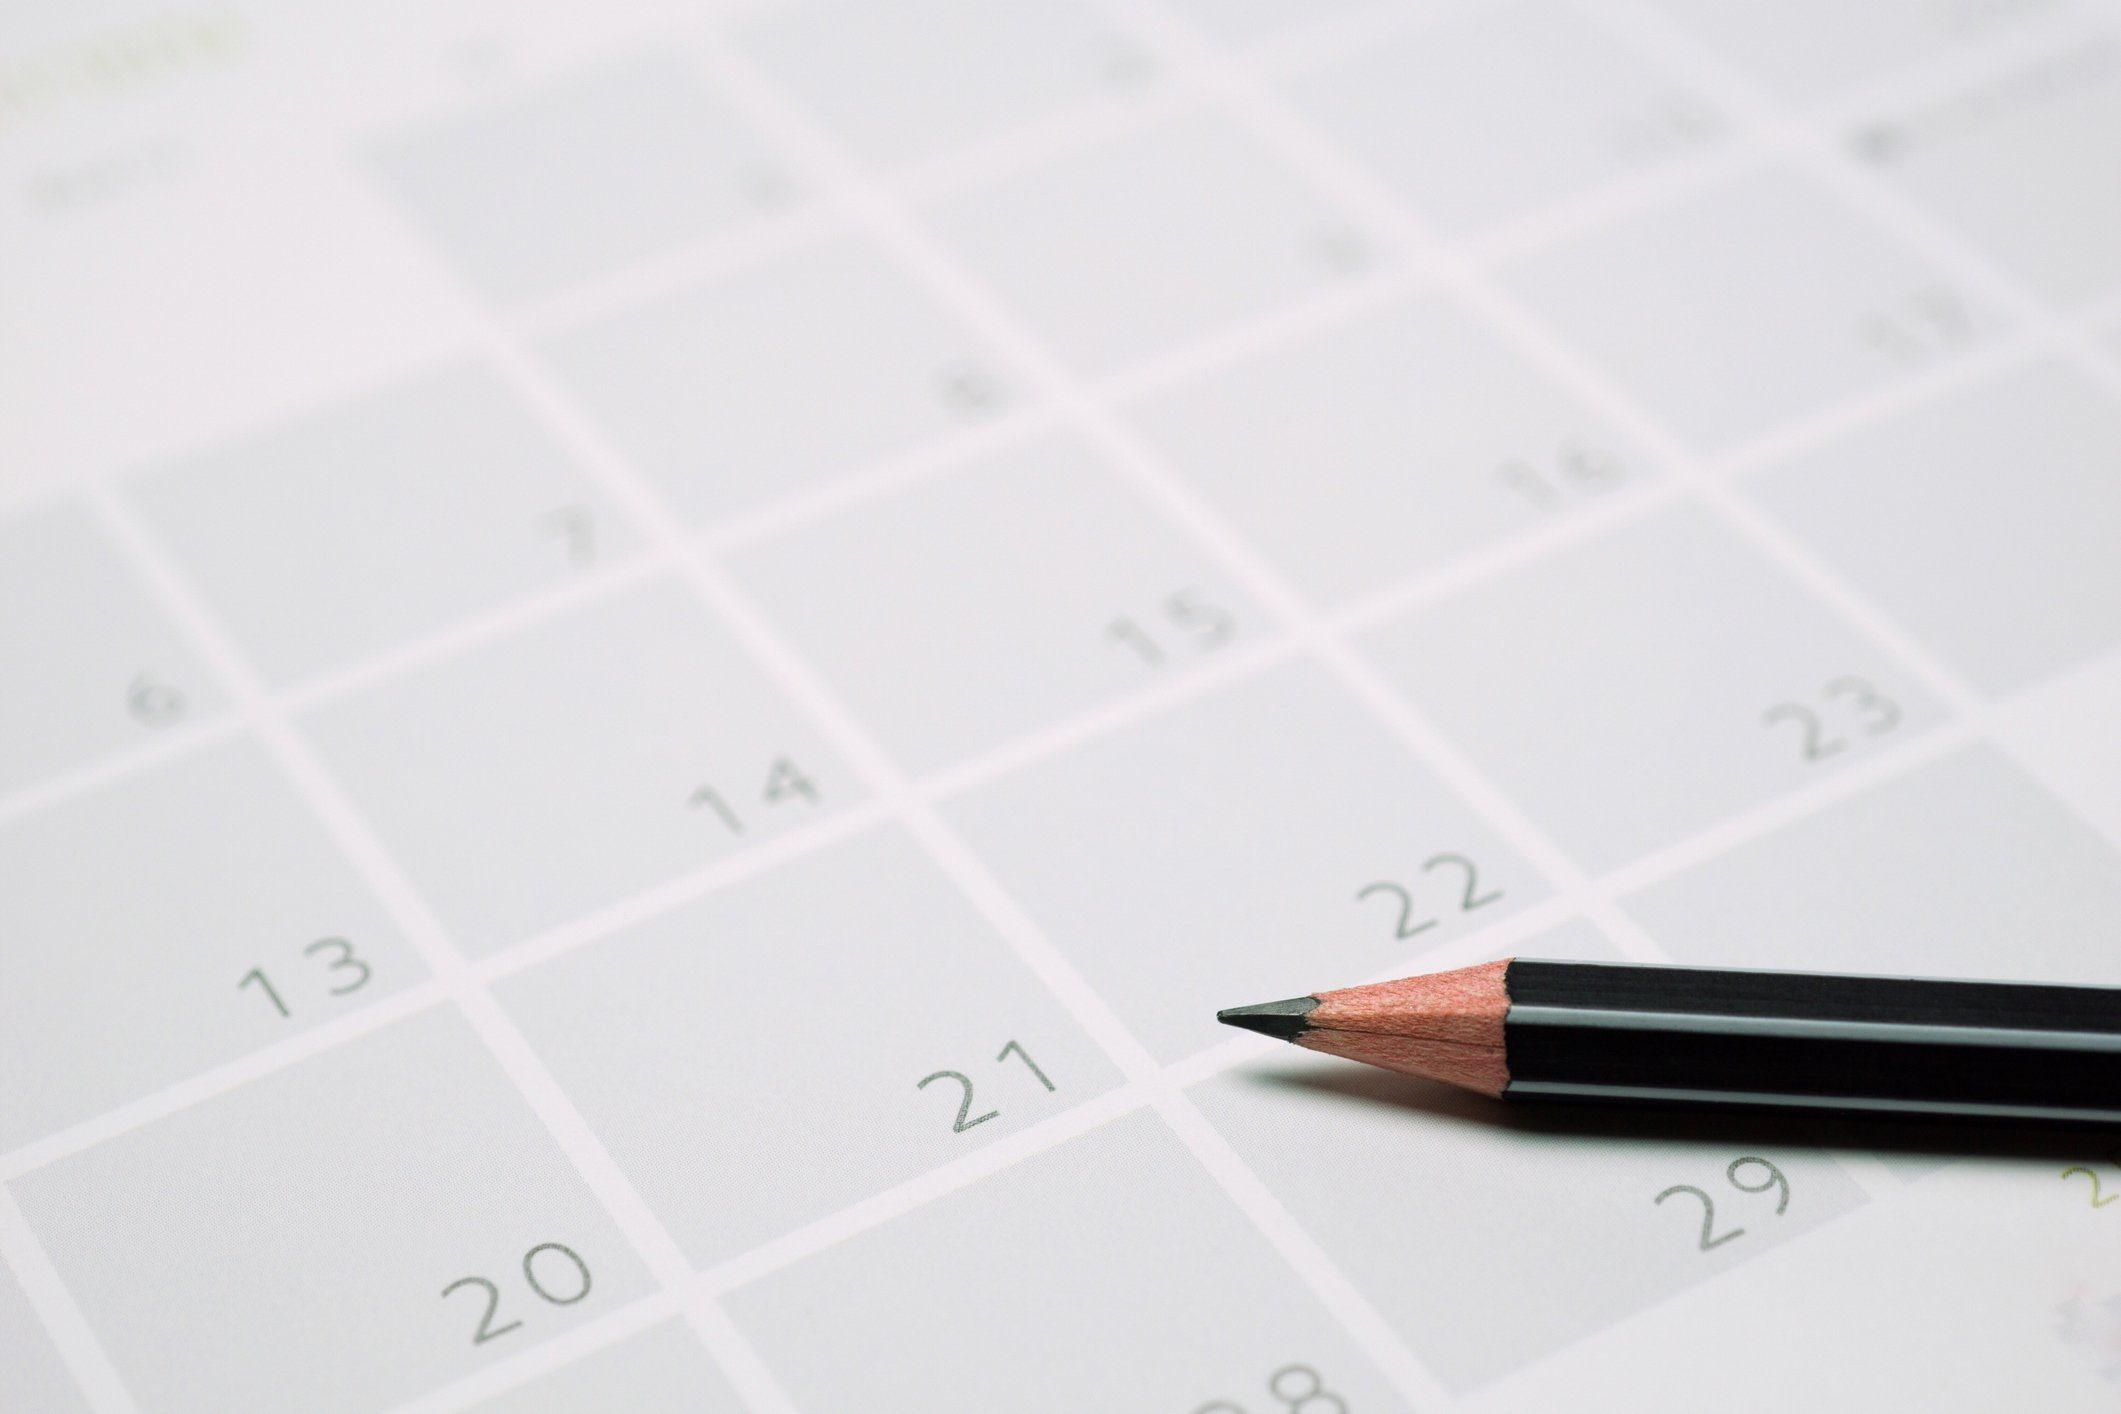 close up of pencil on calendar